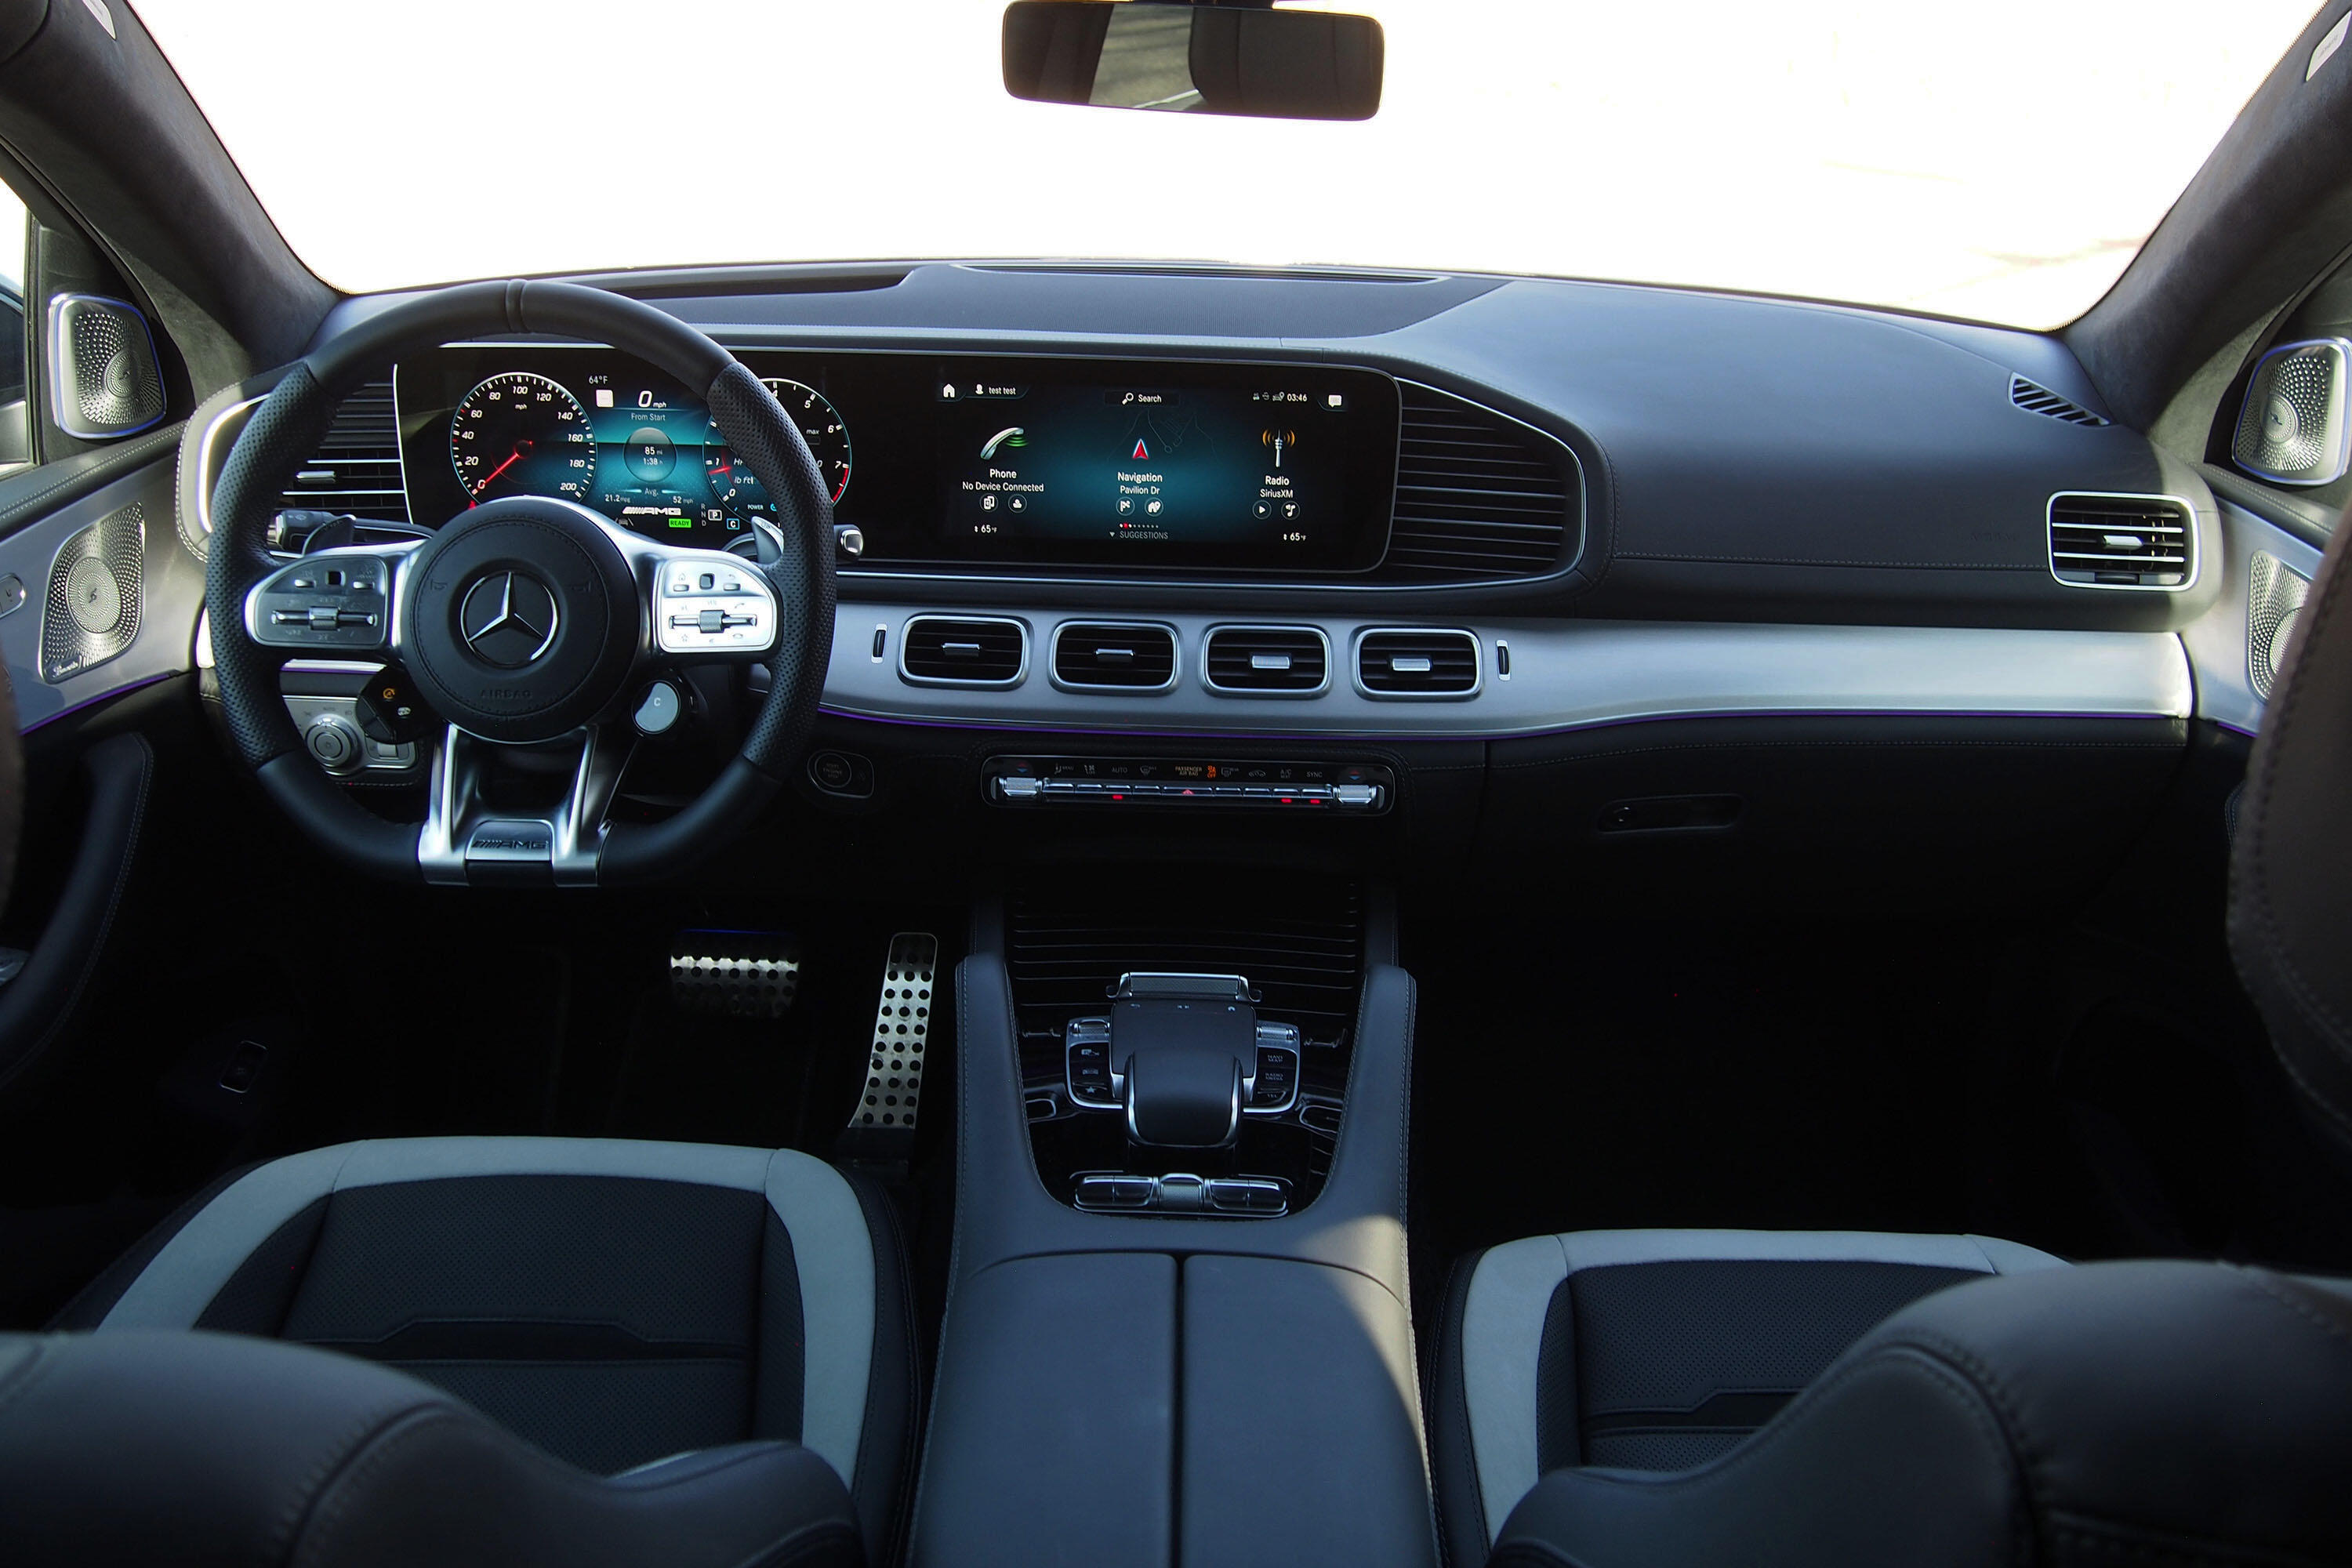 2021 Mercedes AMG GLE63 S Coupe - interior